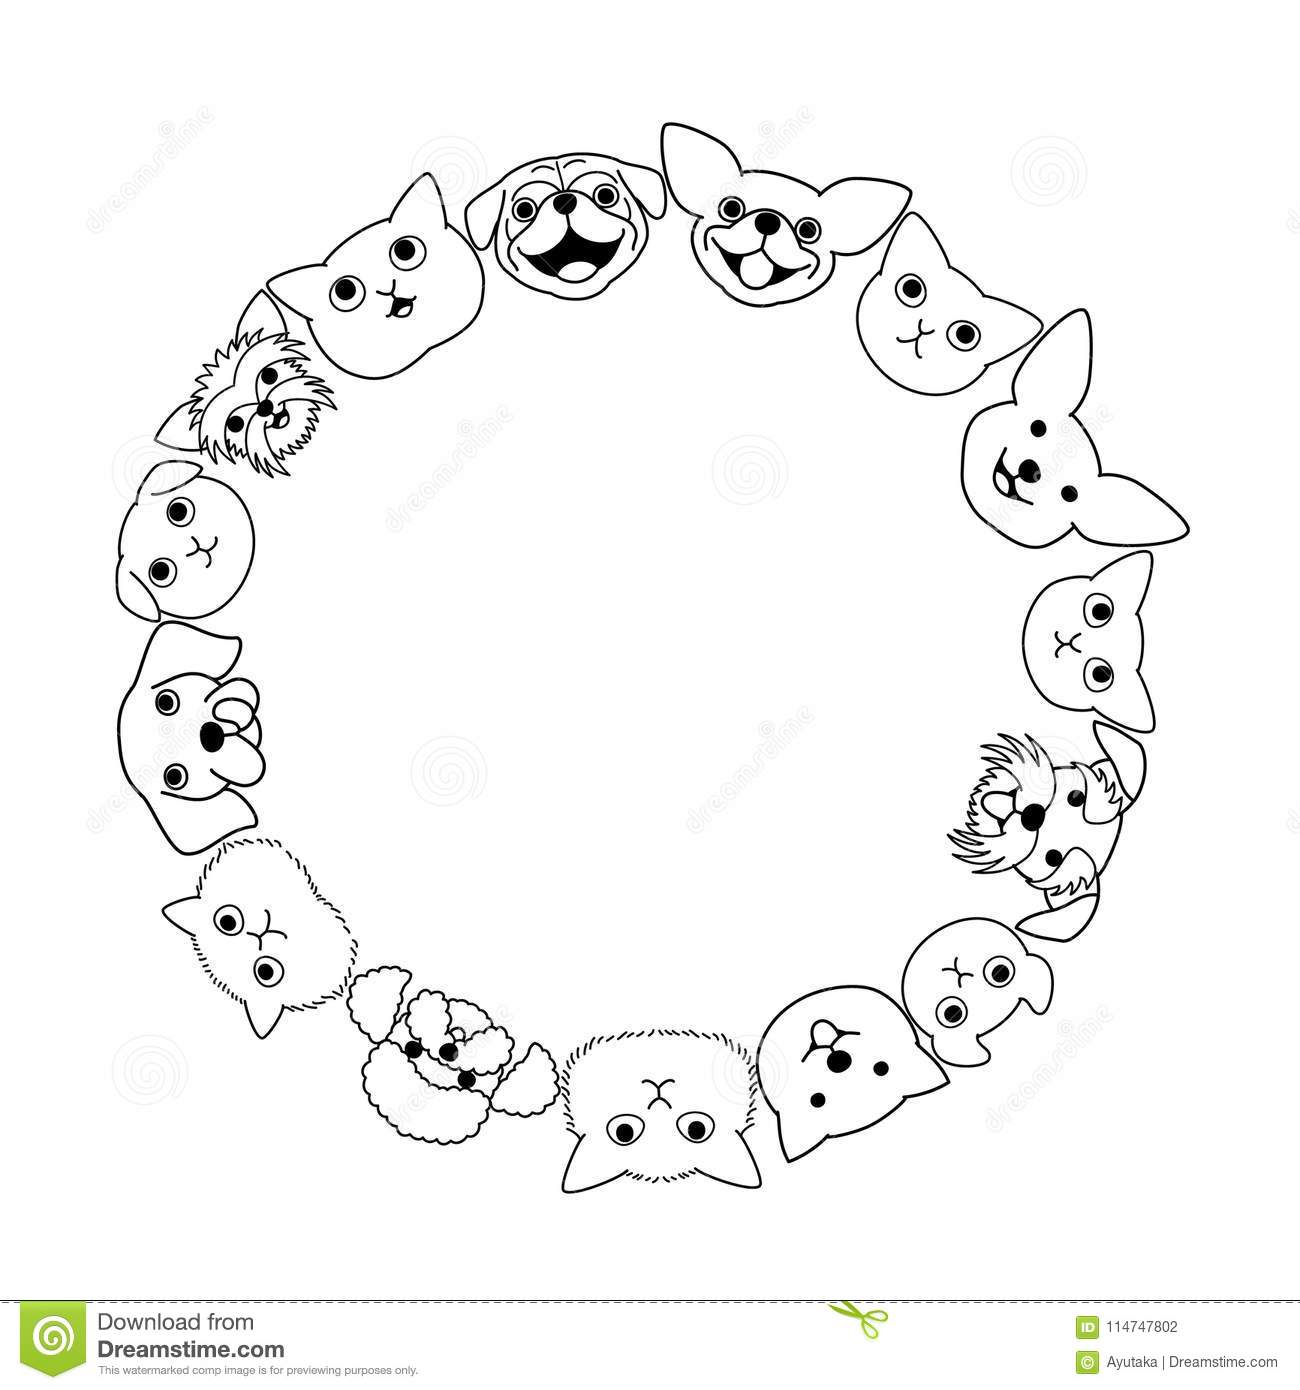 Dogs and cats face circle